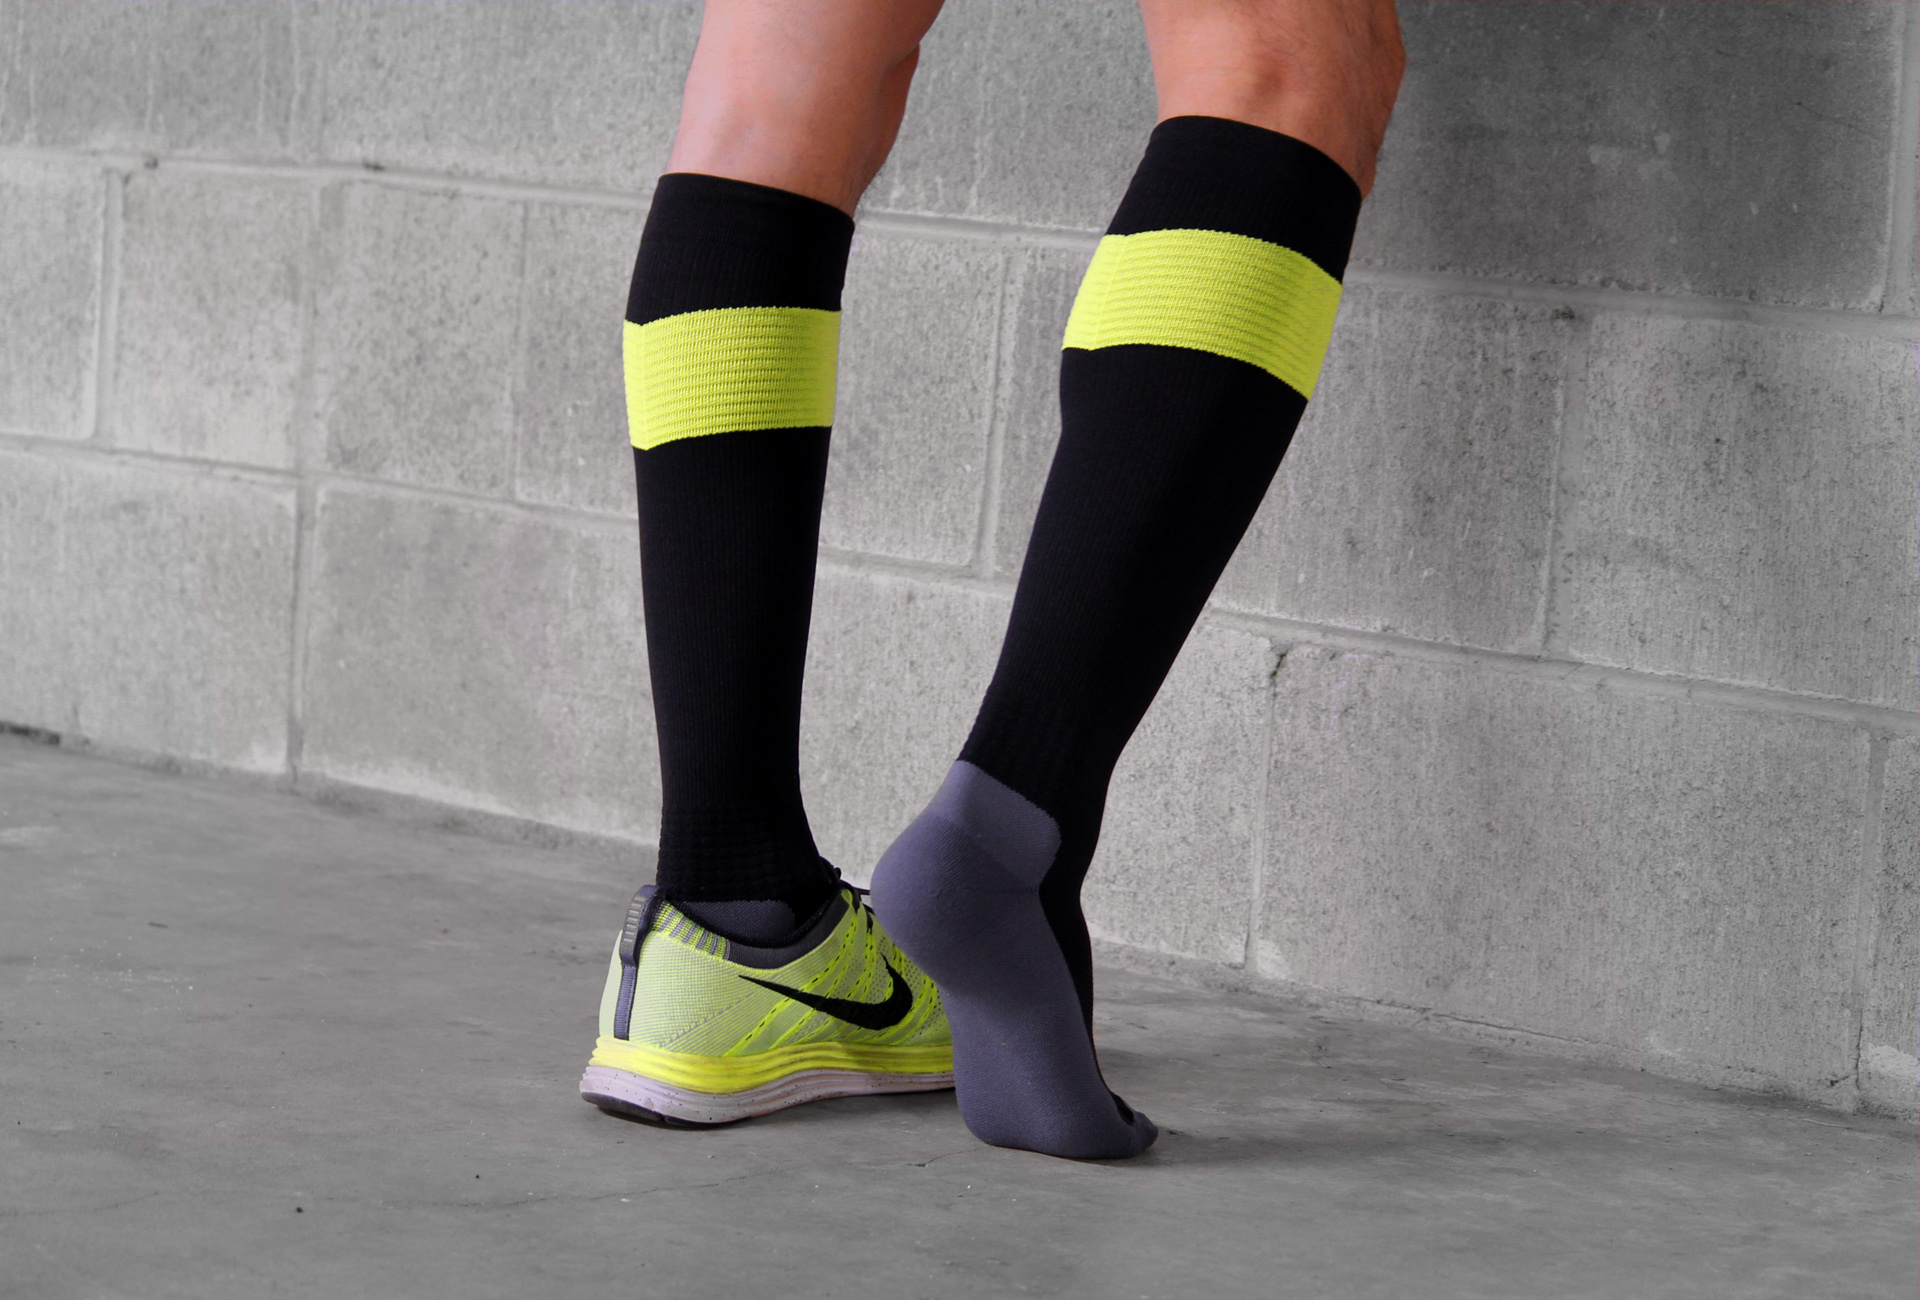 b27b8b1aba I've wanted to try compression socks for a long time now but have not  wanted to fork out the $60-$100 to purchase them.